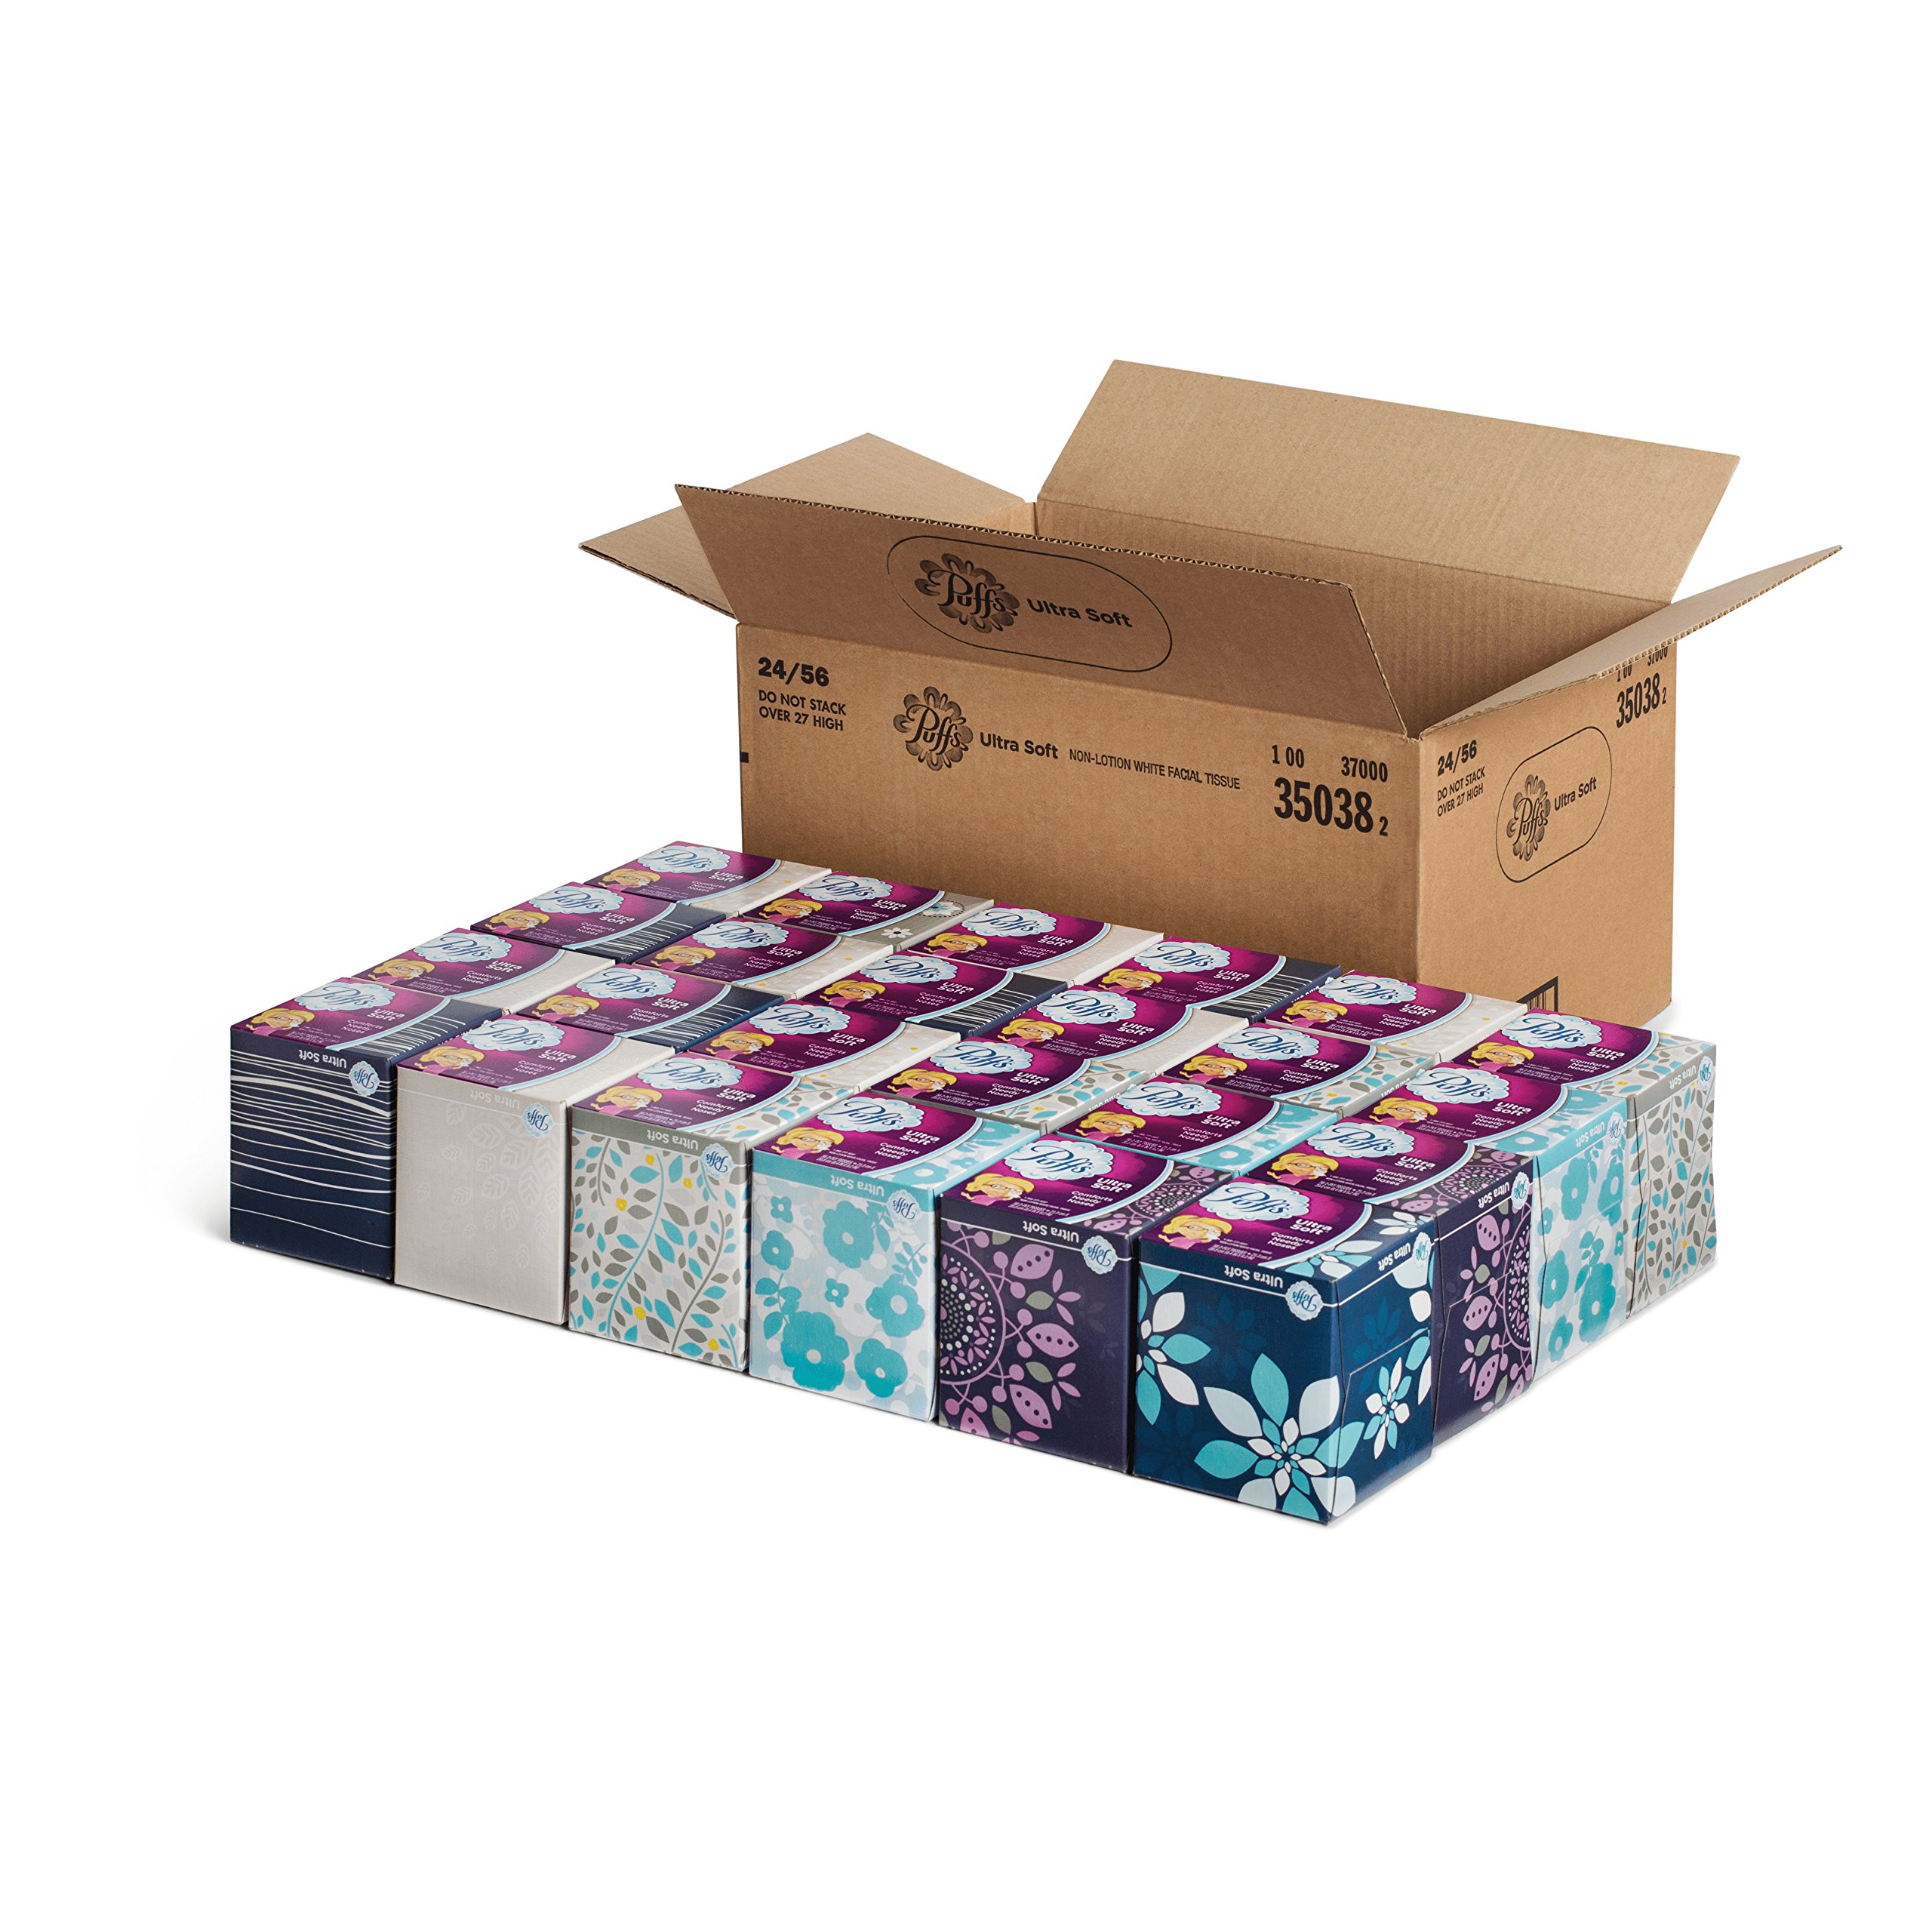 Puffs 35038 Ultra Soft Facial Tissue, 56 Sheets per Box (Case of 24)